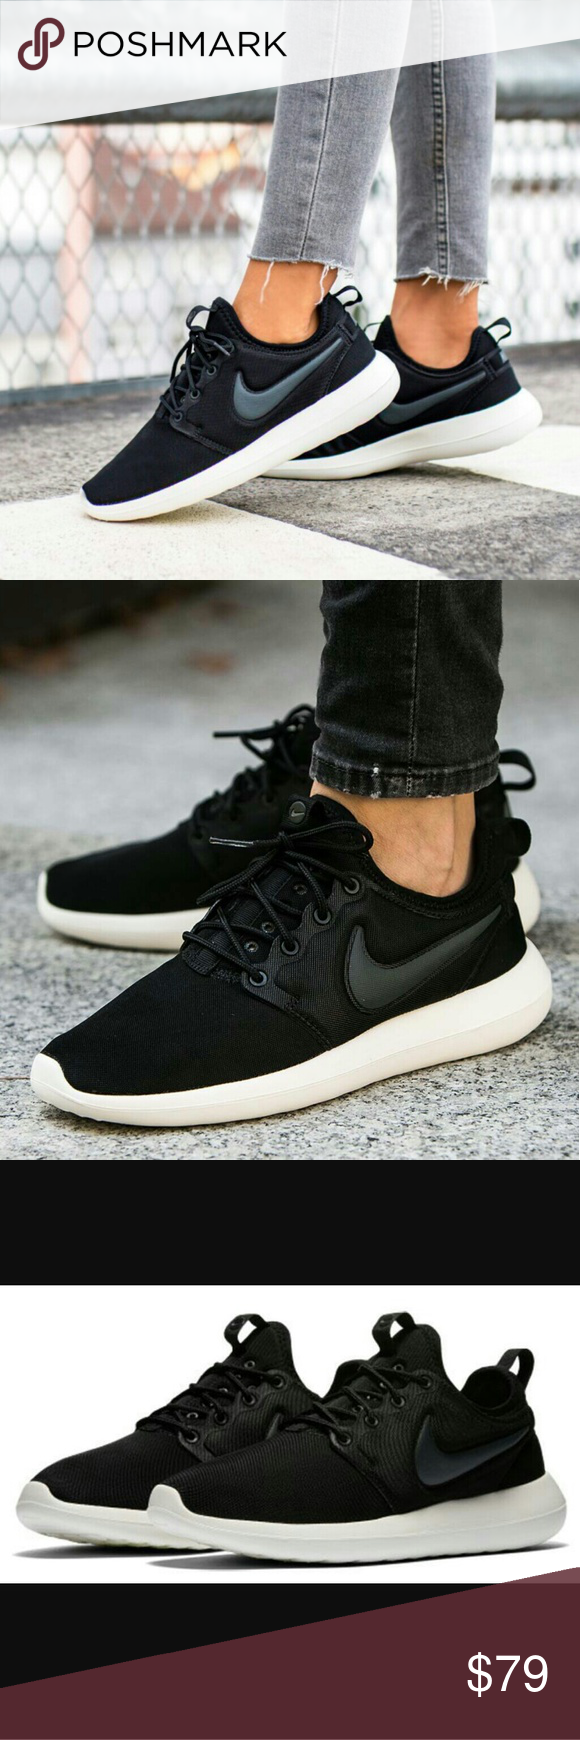 359f0747e98b NWT Nike Roshe Two Black White Shoe - New in Box! - Great summer neutral  for working out and running - Fit true to size Nike Shoes Athletic Shoes